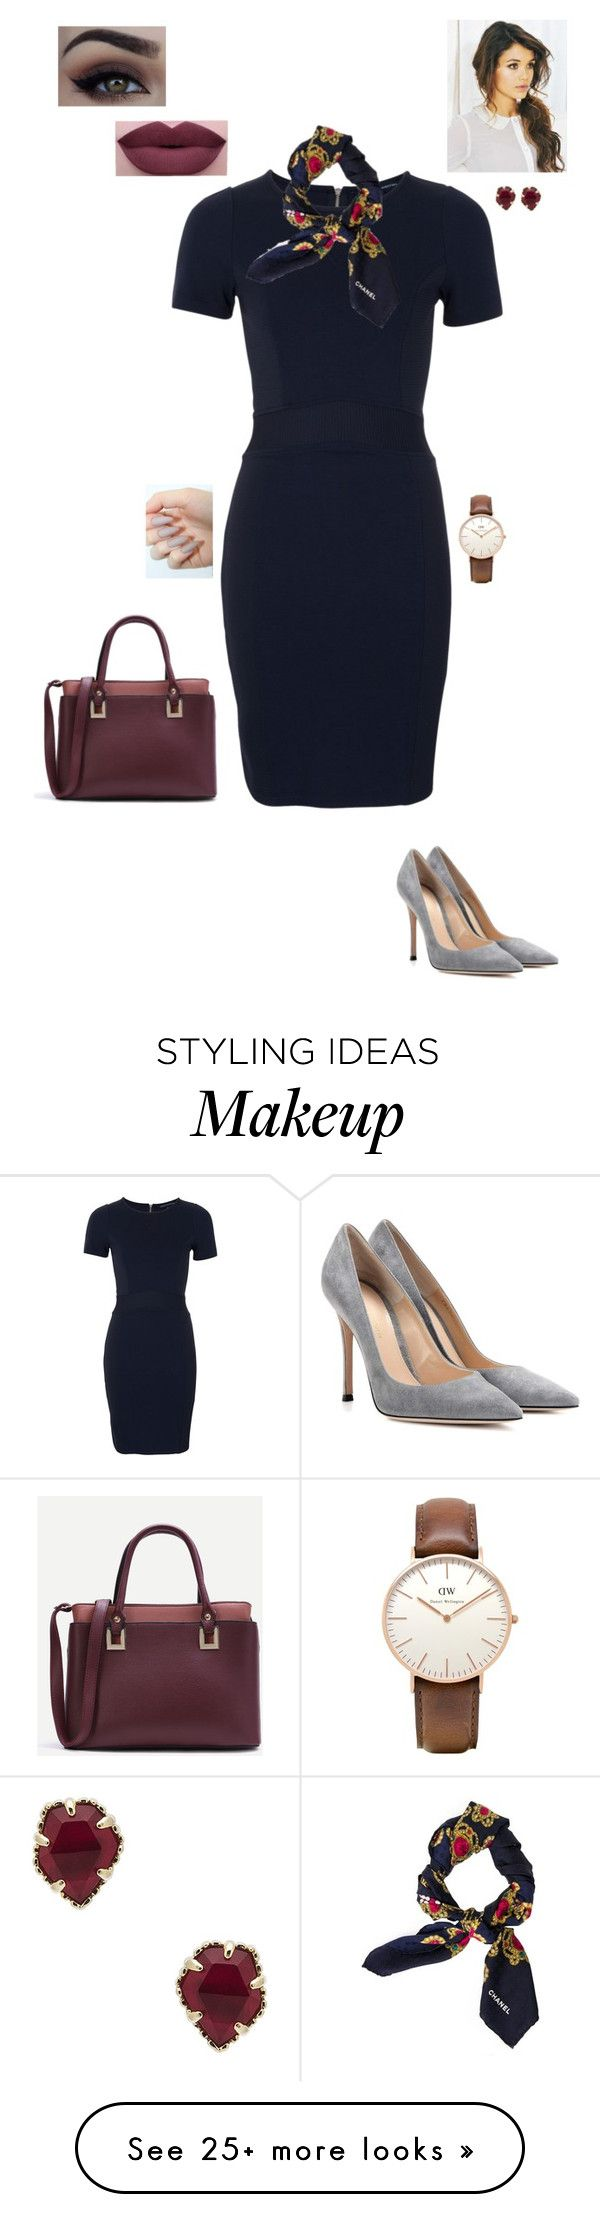 """7.2.17"" by jesshorne2016 on Polyvore featuring Gianvito Rossi, Mon Cheri, French Connection, NYX, Chanel, Daniel Wellington and Kendra Scott"